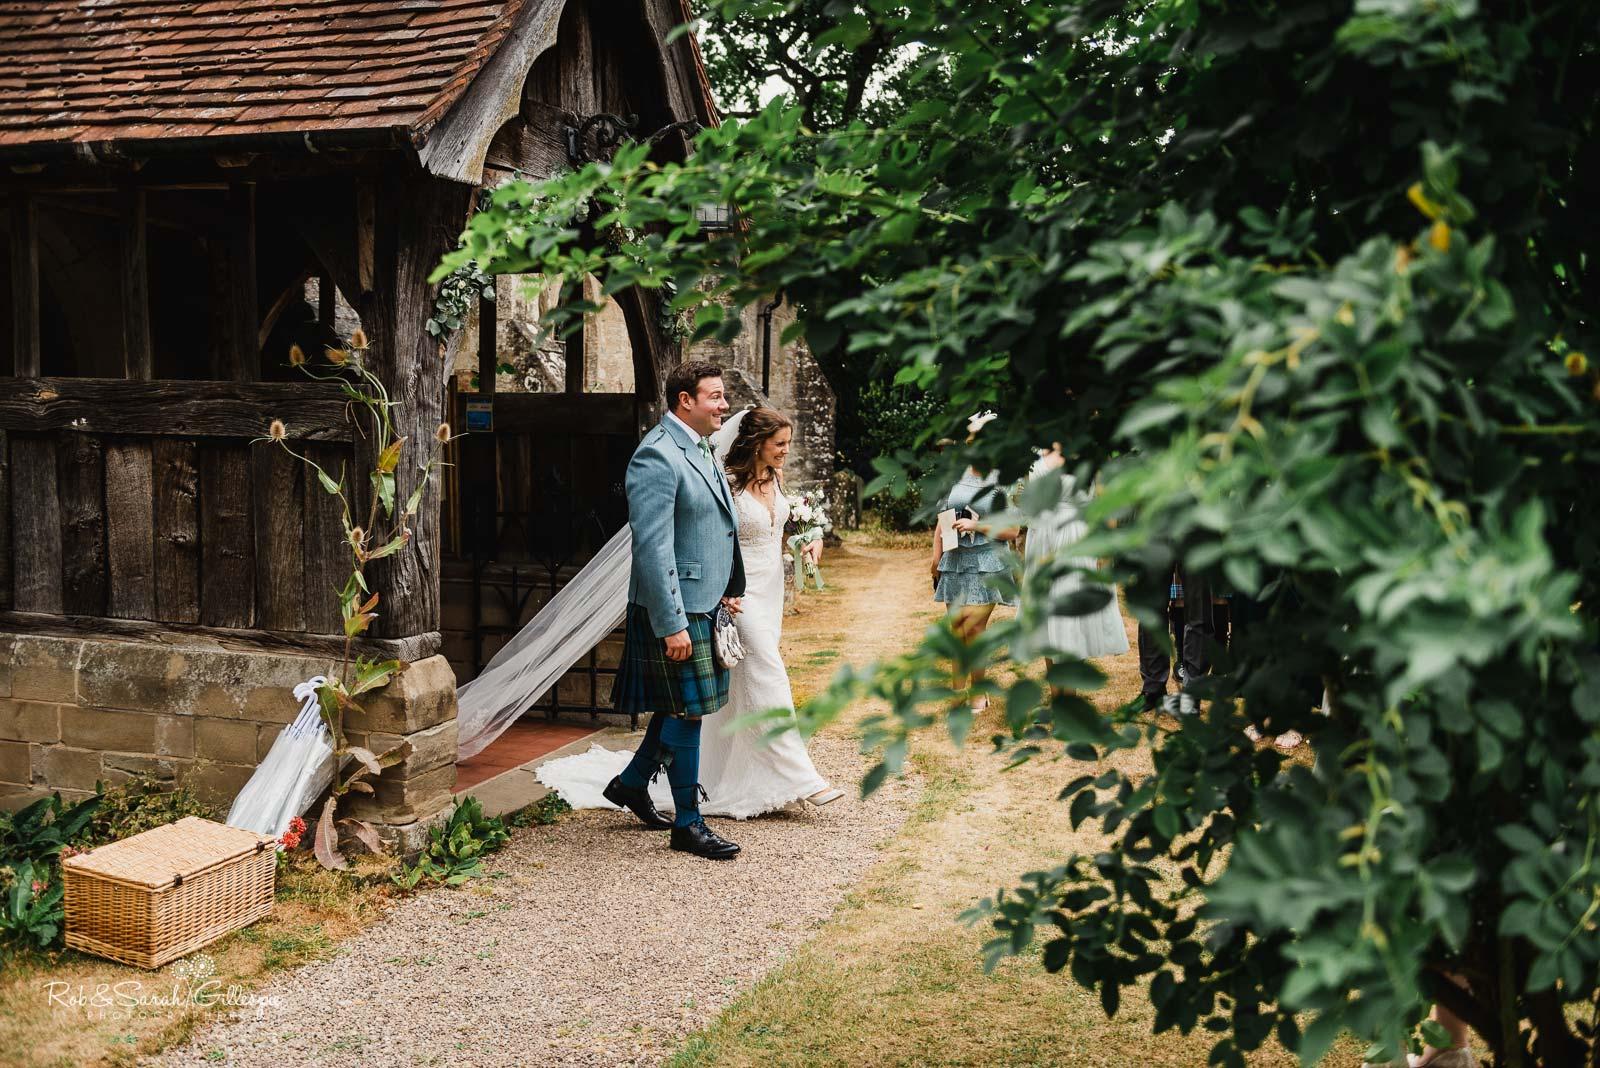 Bride and groom married at St Giles church Packwood